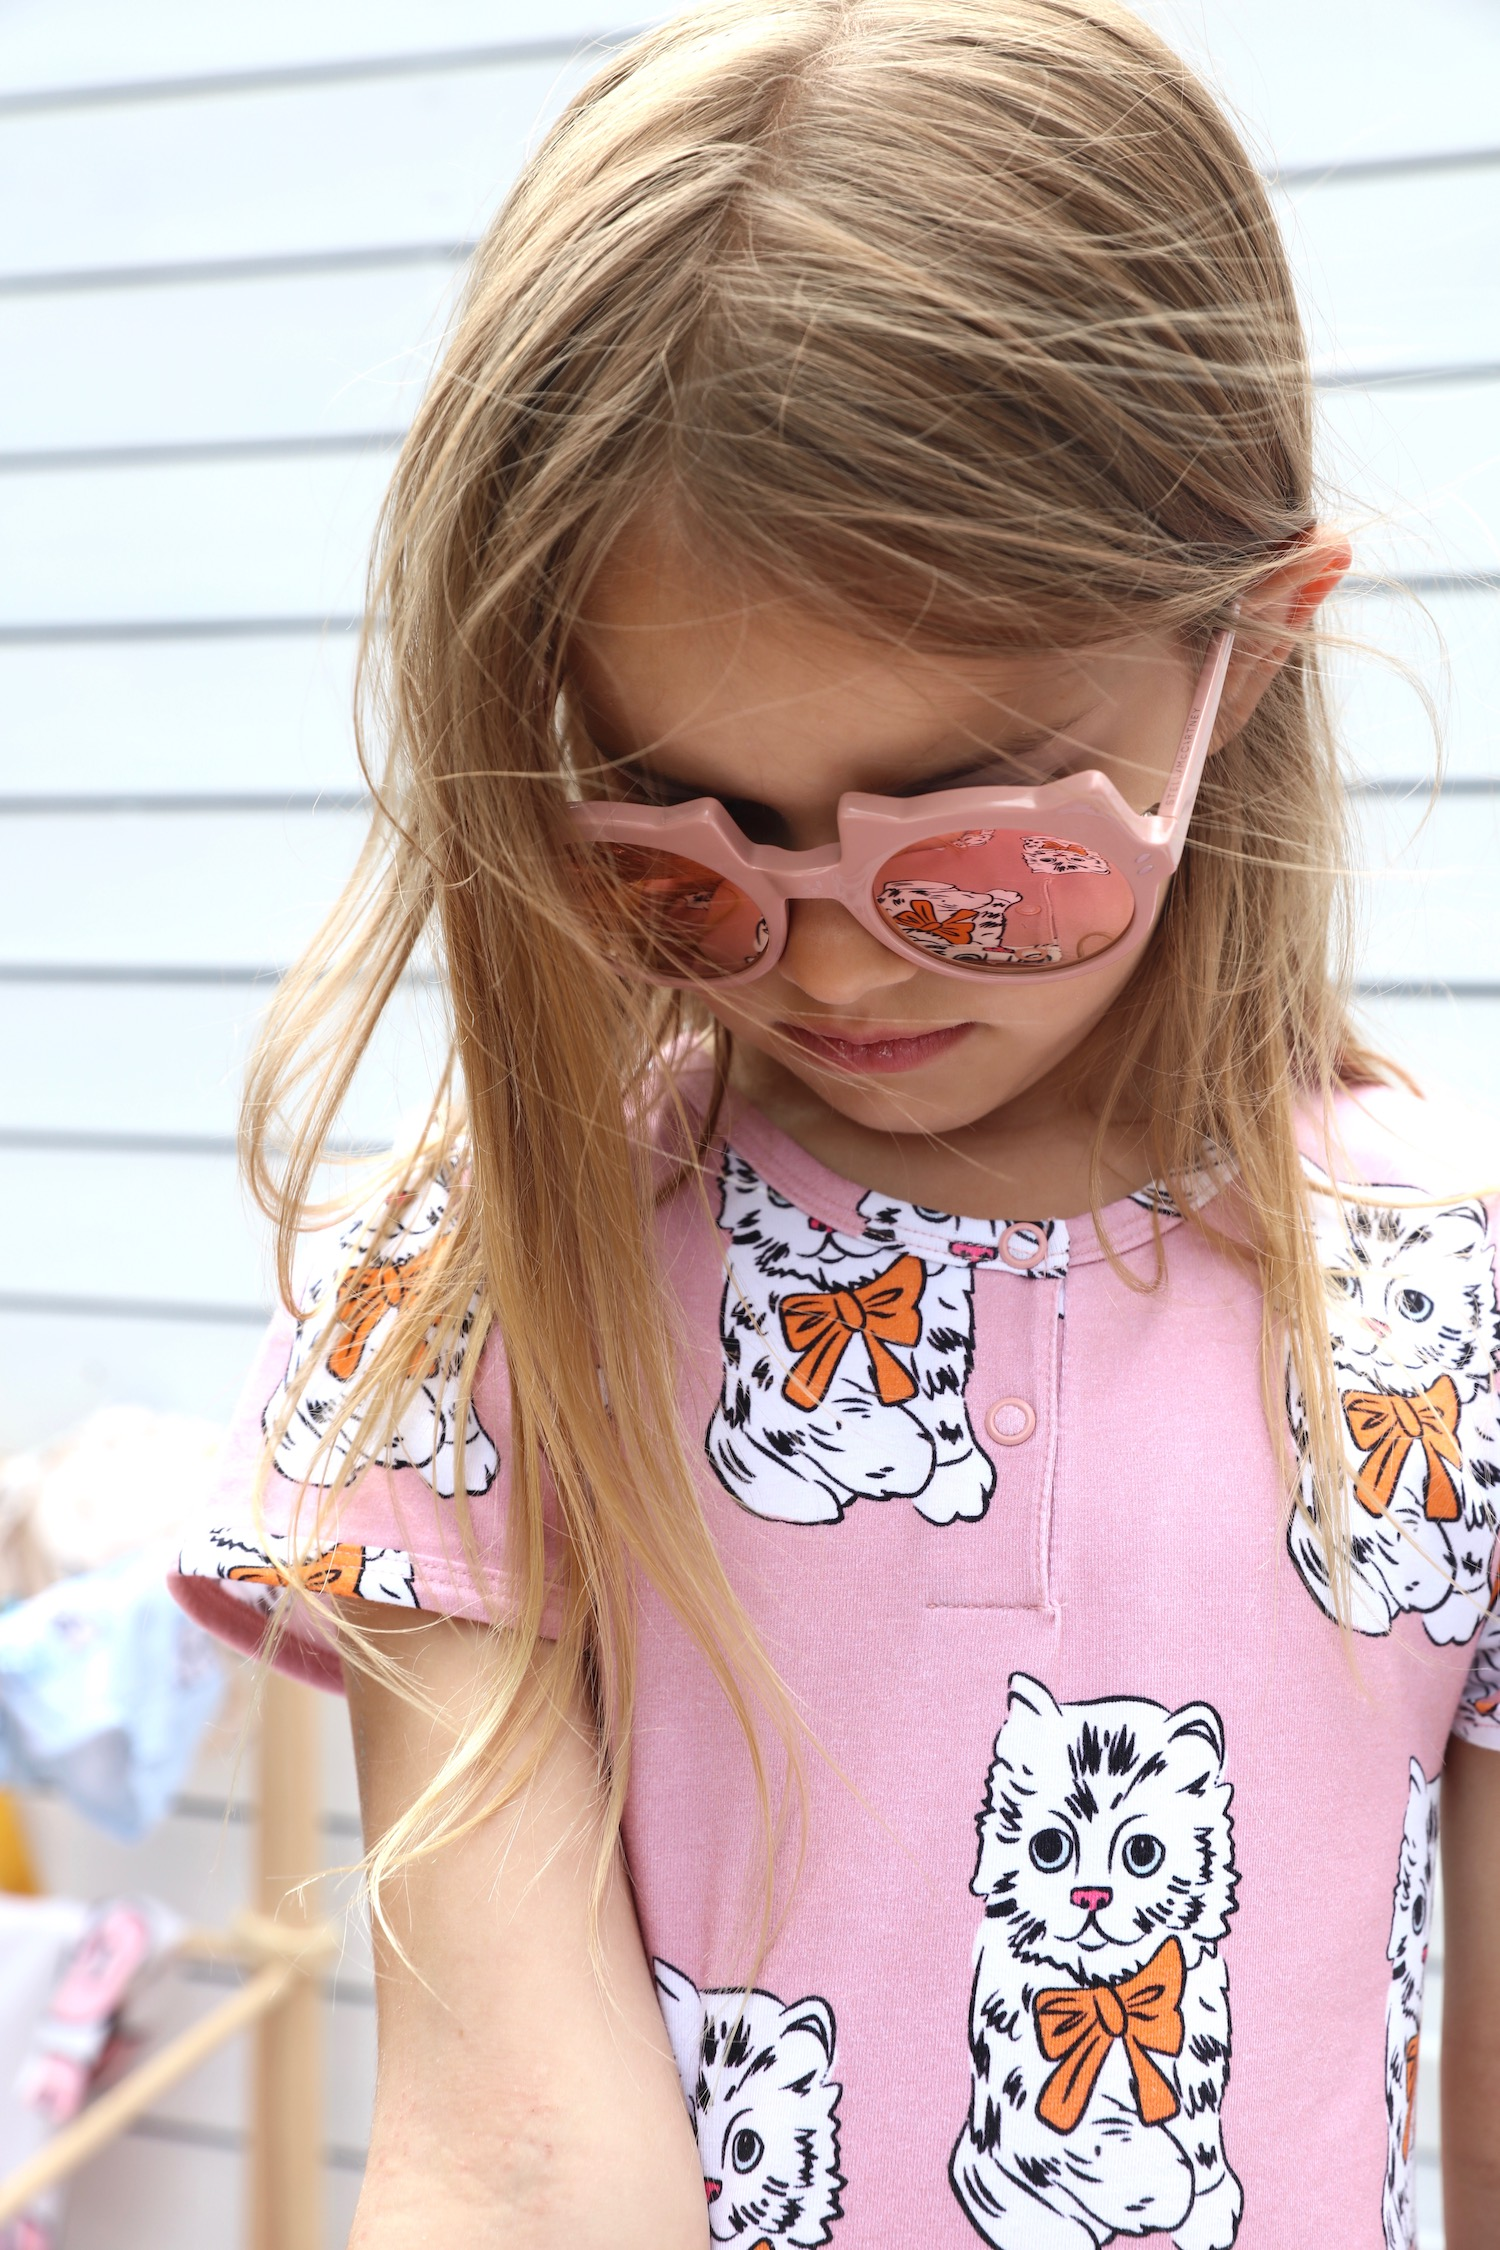 Childrensalon_sella_mccartney_cat_sunglasses